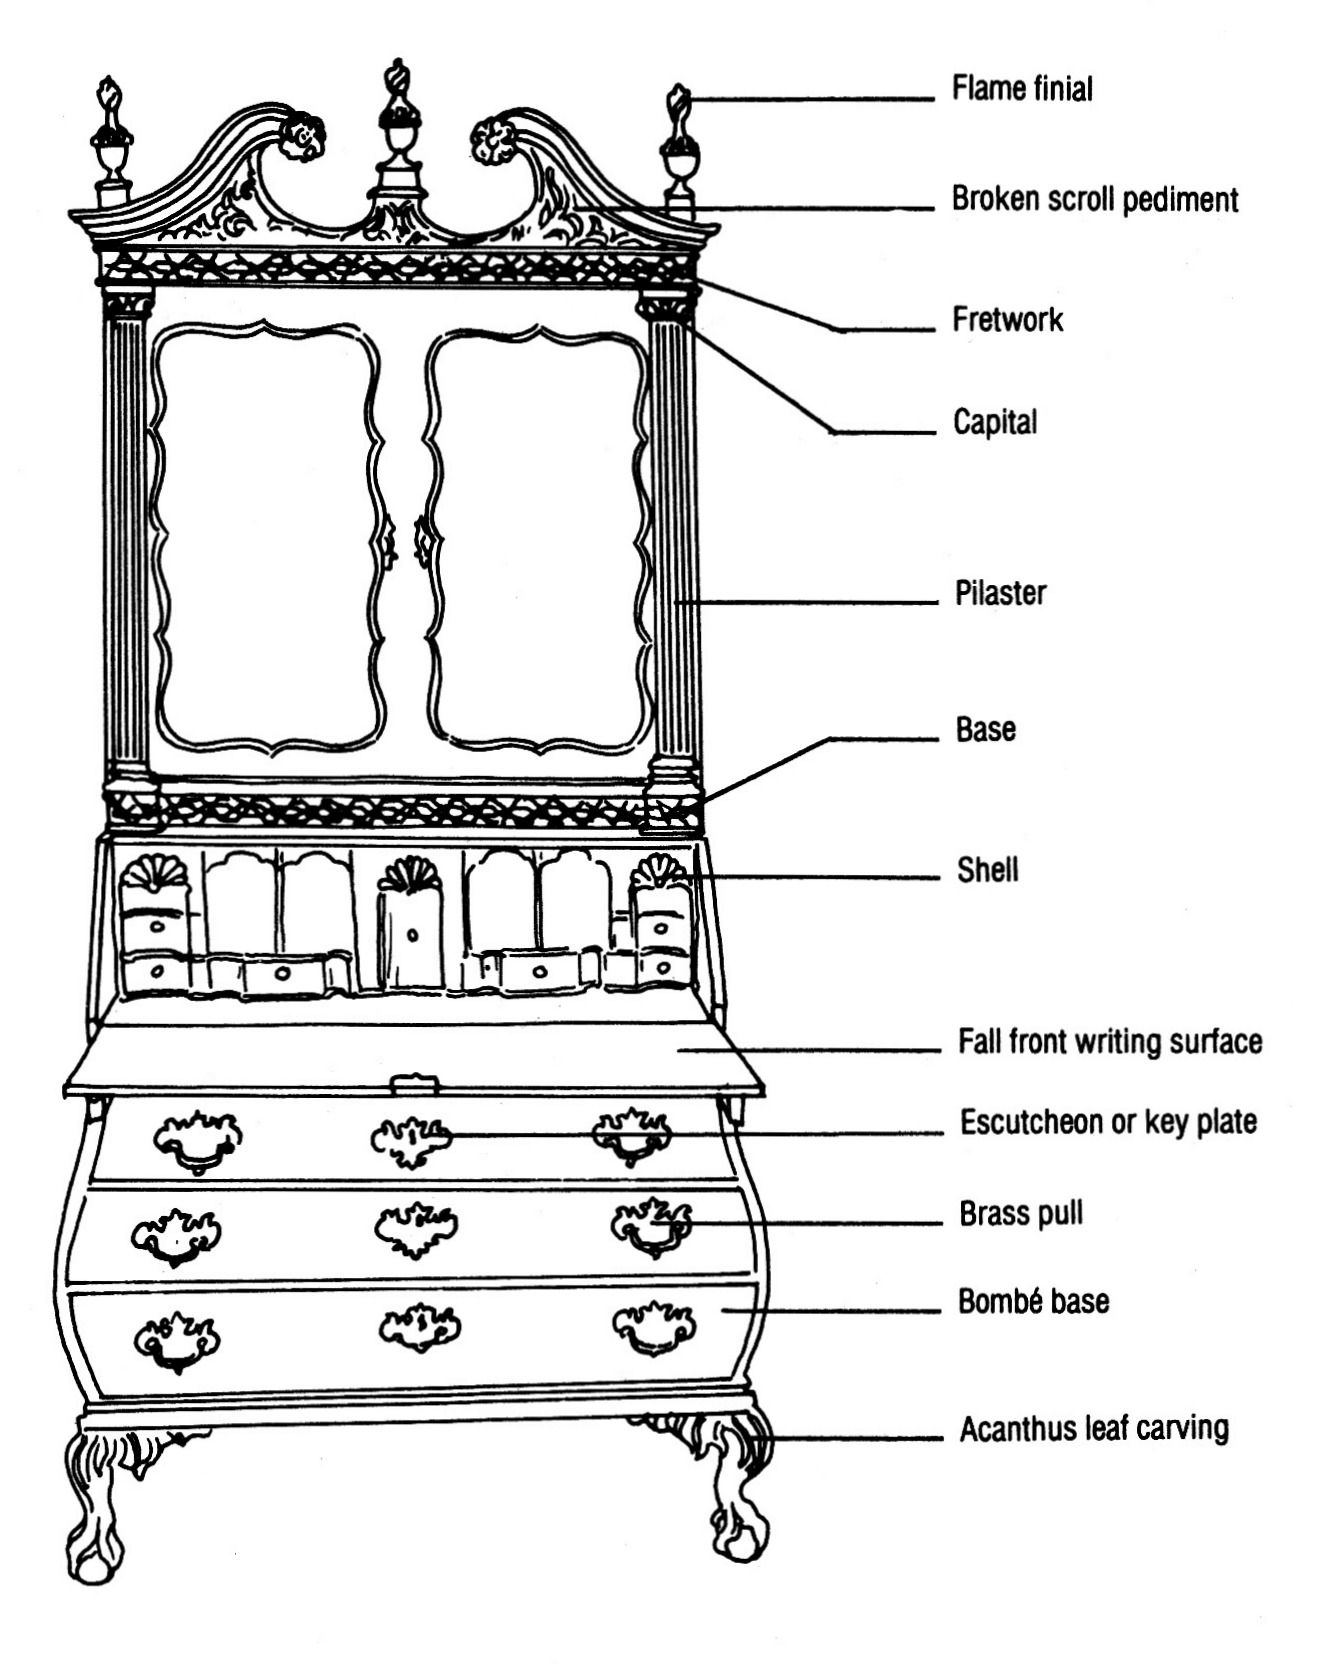 diagram of chippendale desk and bookcase 1770 1785. Black Bedroom Furniture Sets. Home Design Ideas